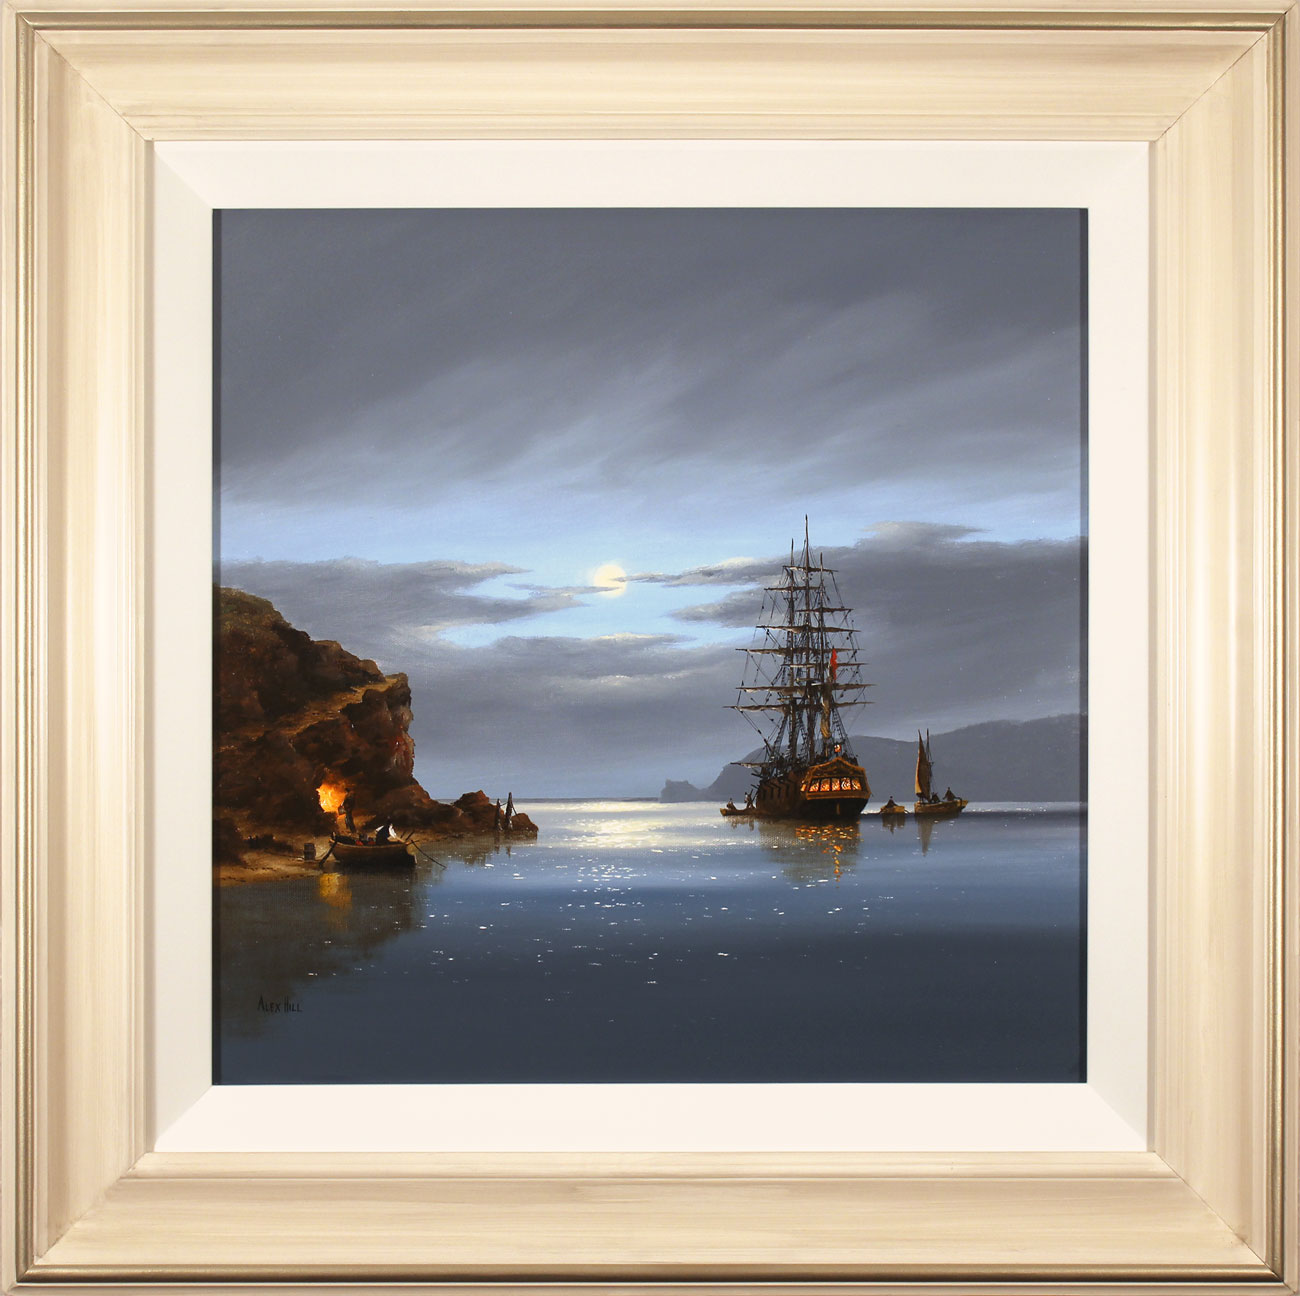 Alex Hill, Original oil painting on canvas, Moonlight Run Click to enlarge